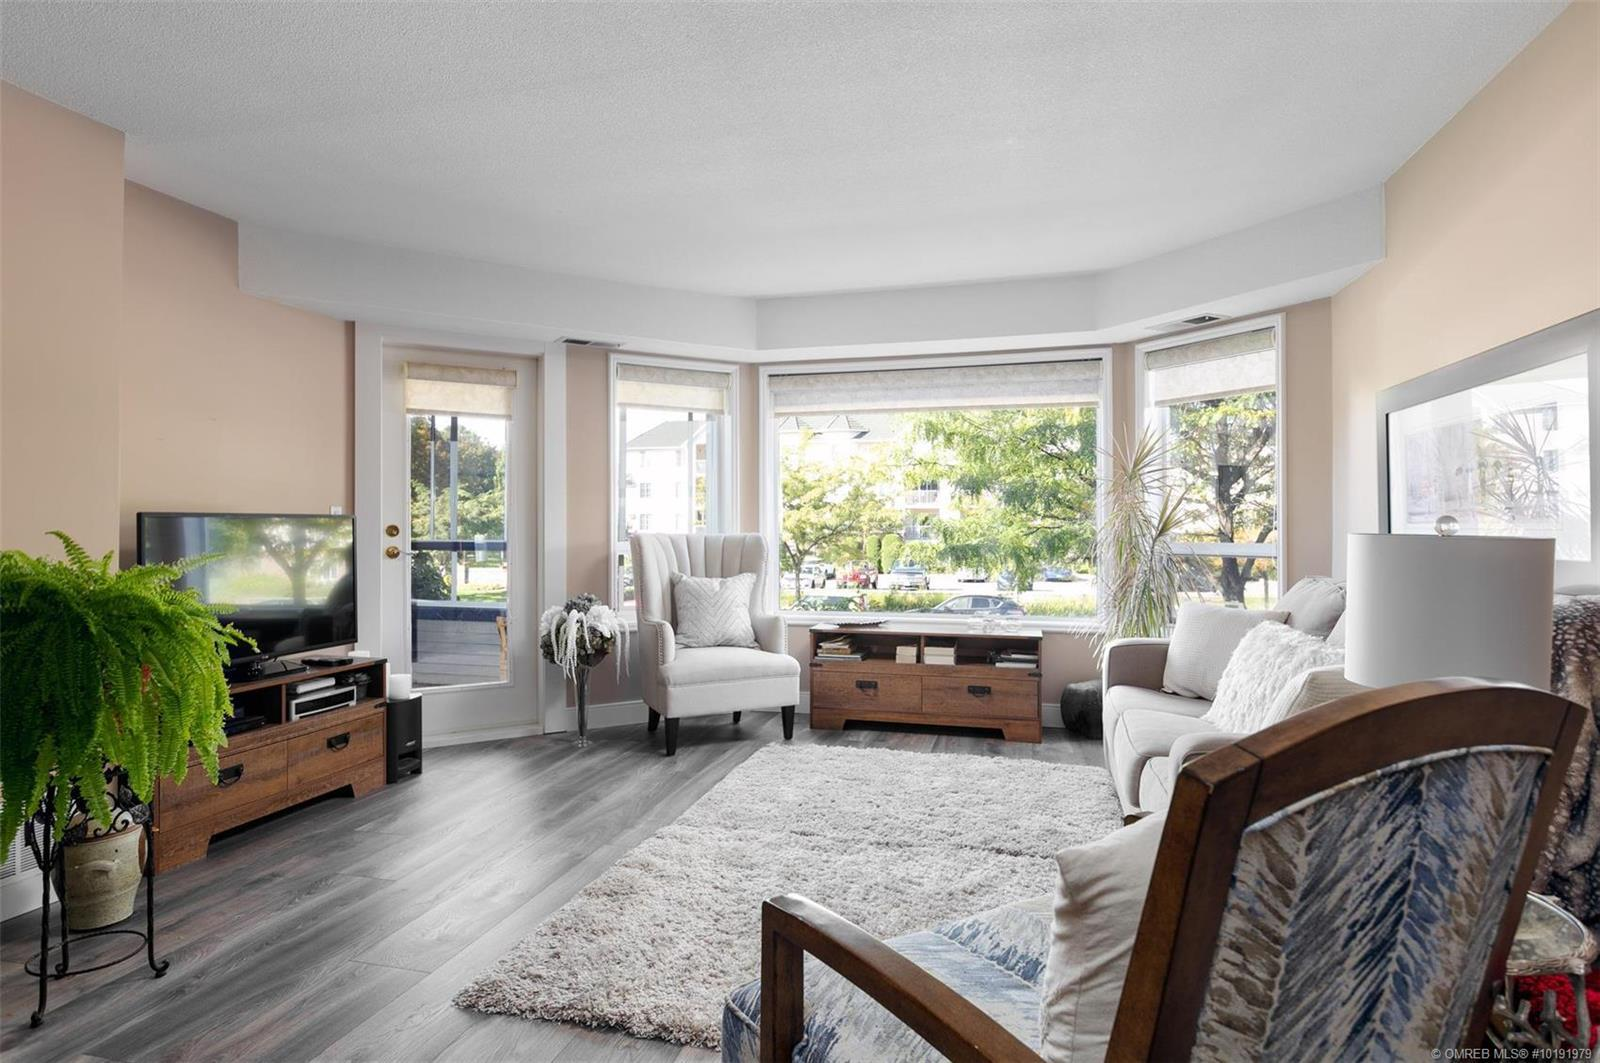 Removed: 102 - 3157 Casorso Road, Kelowna, BC - Removed on 2019-10-25 07:12:23